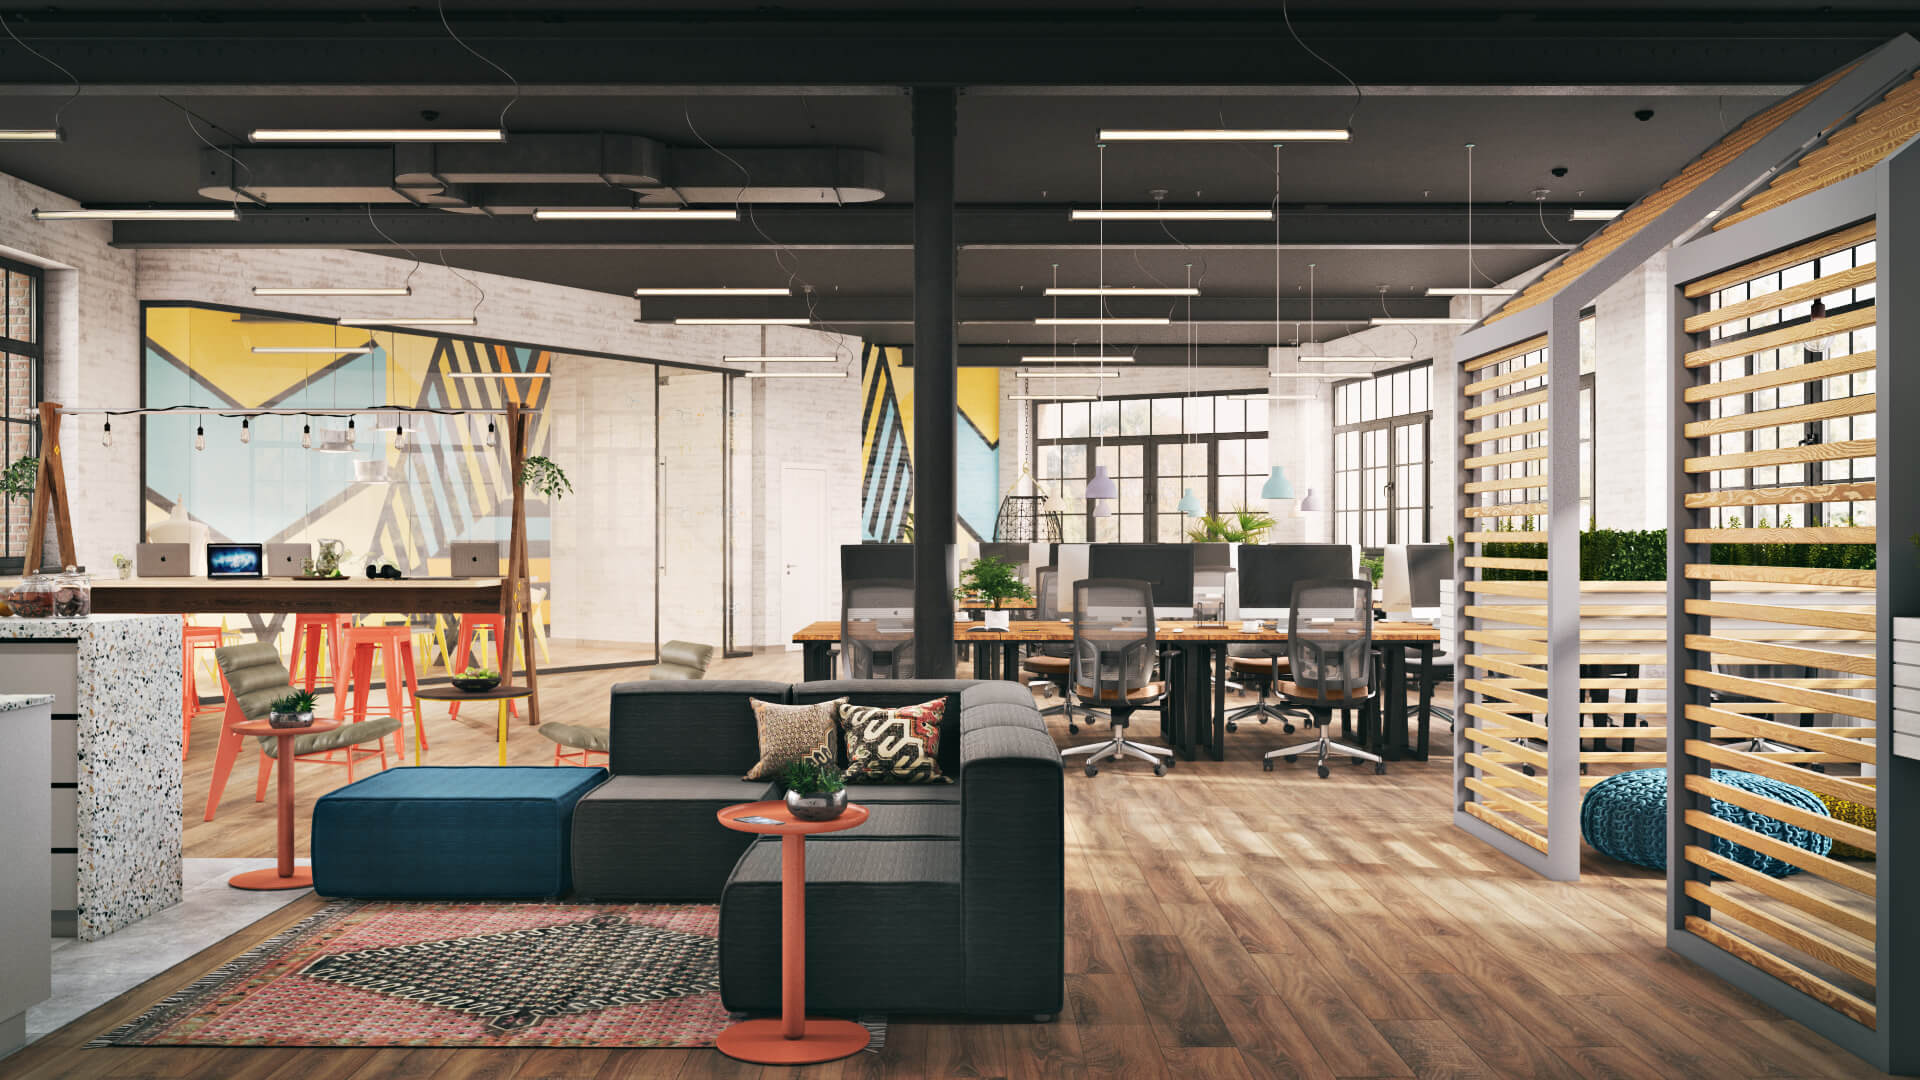 Photoreal Rendering for an Office Space Design